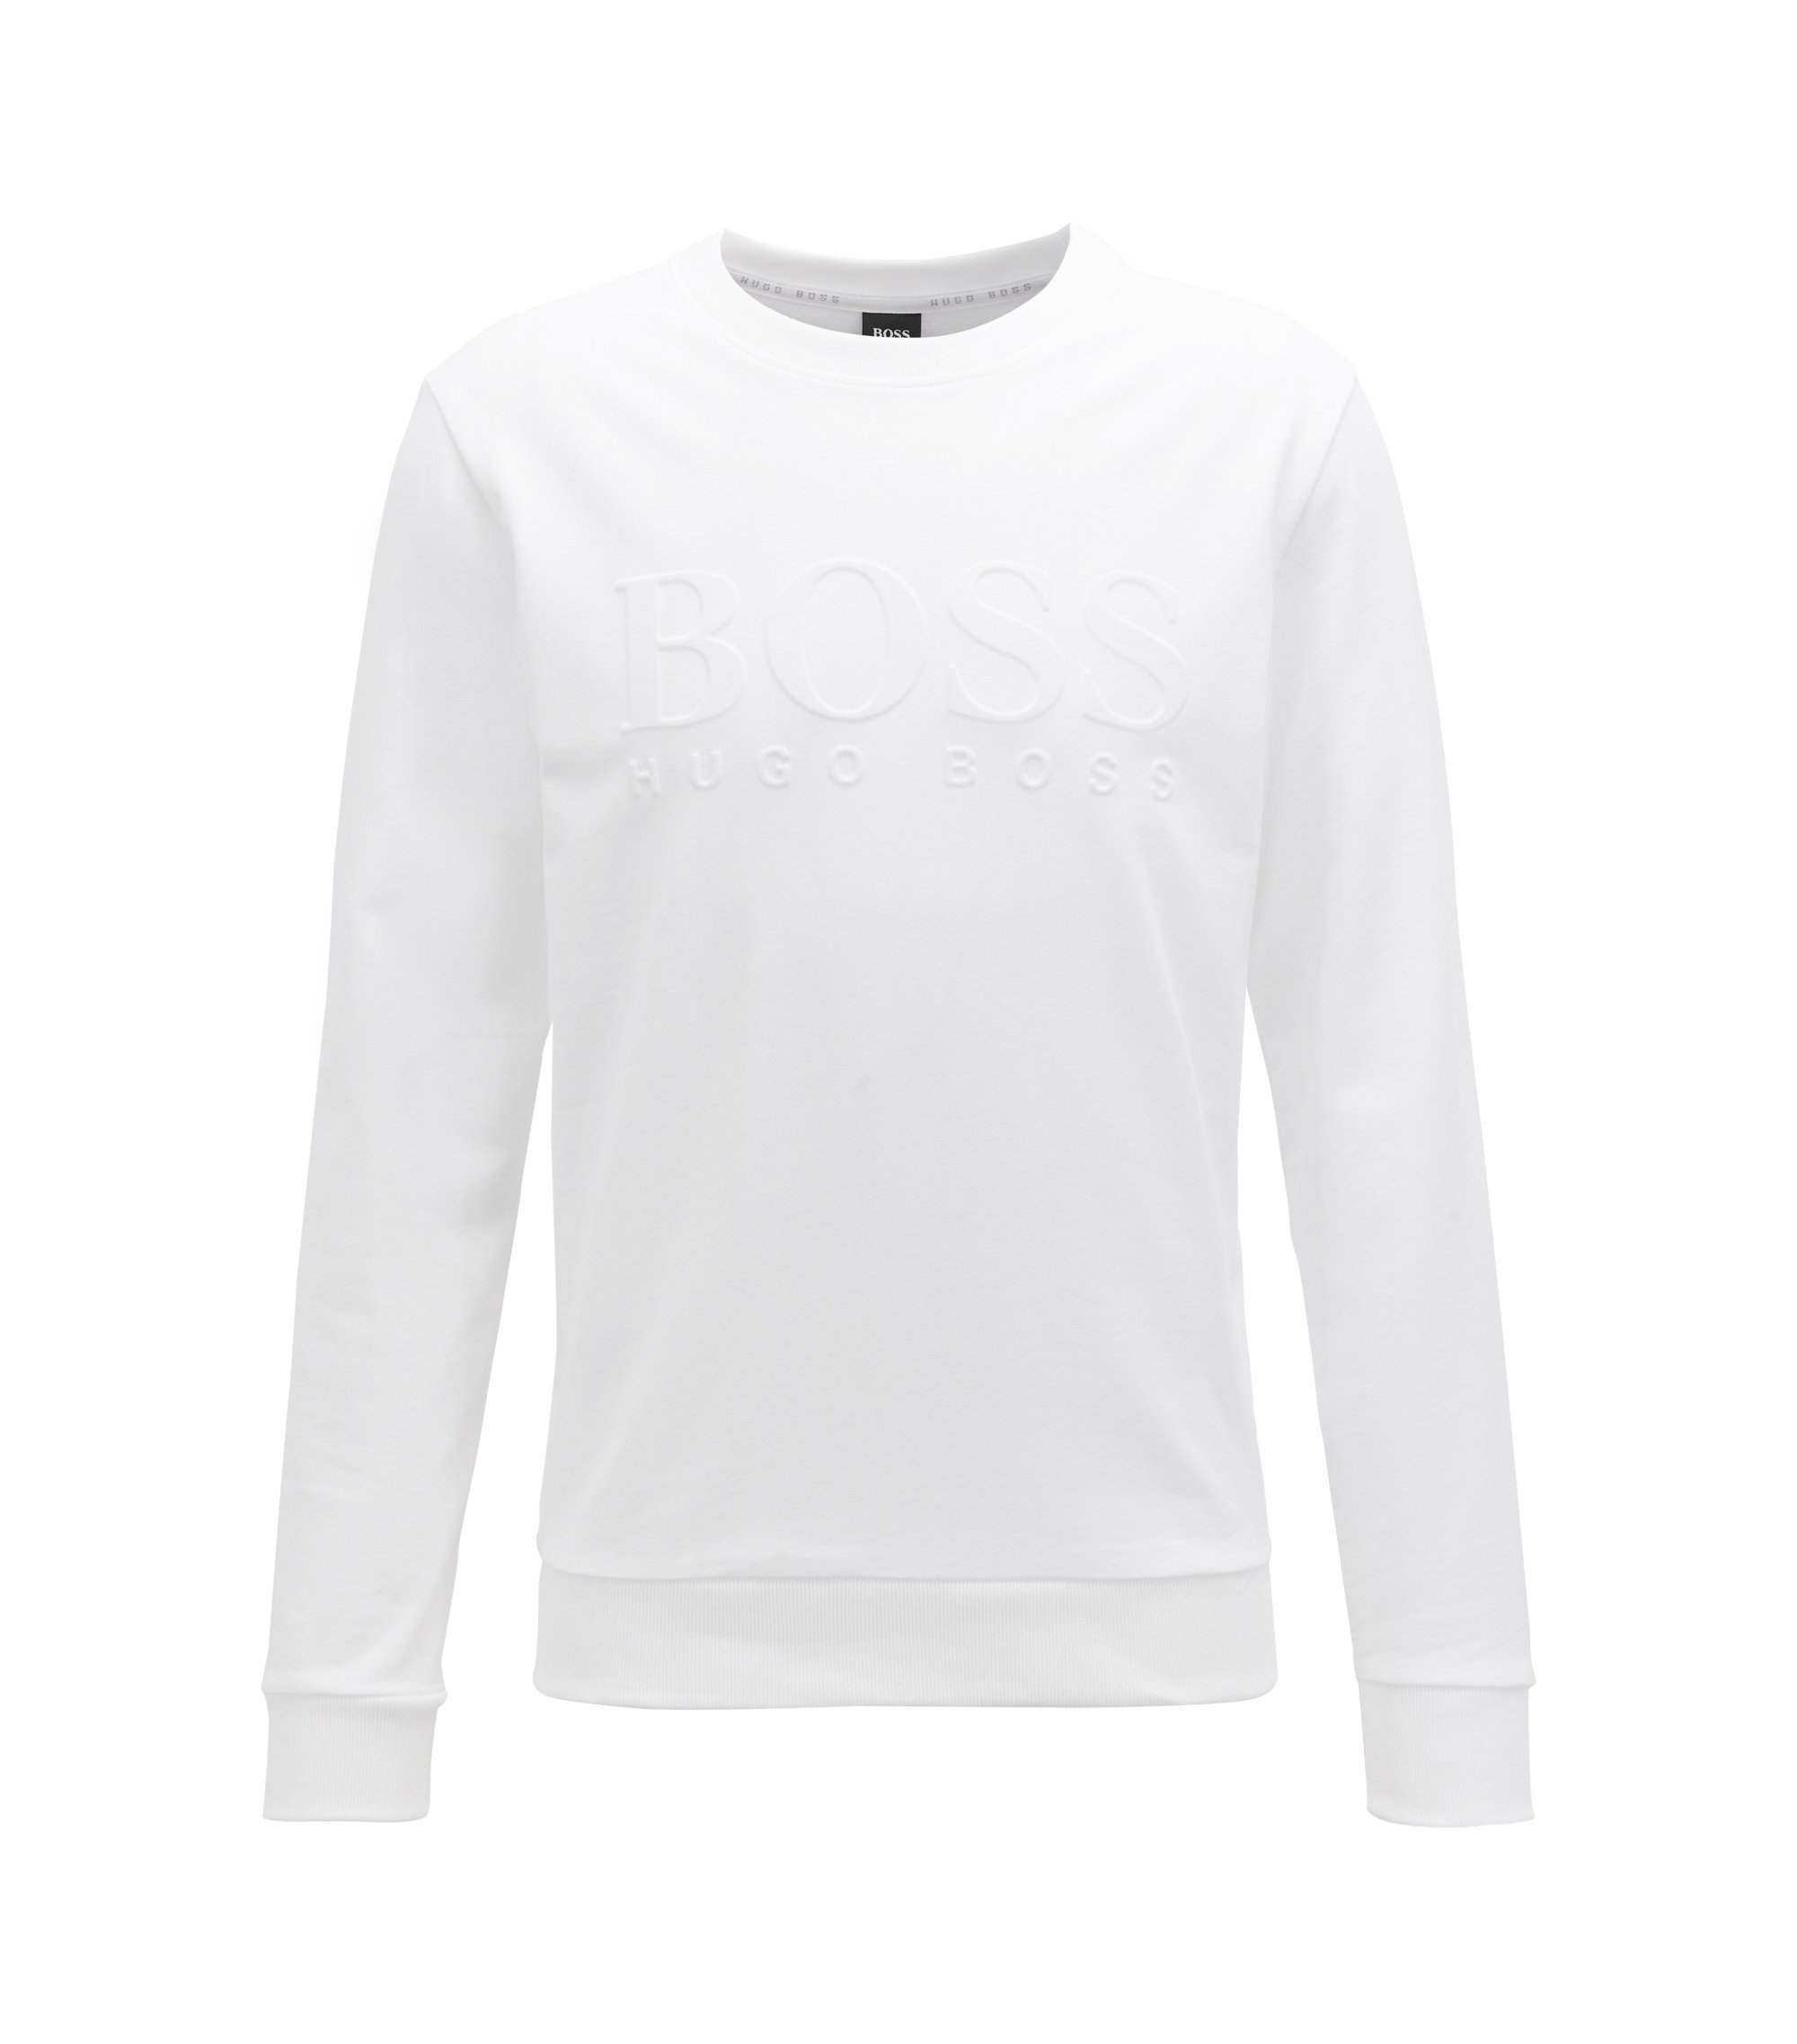 French-terry sweatshirt with embossed logo, White